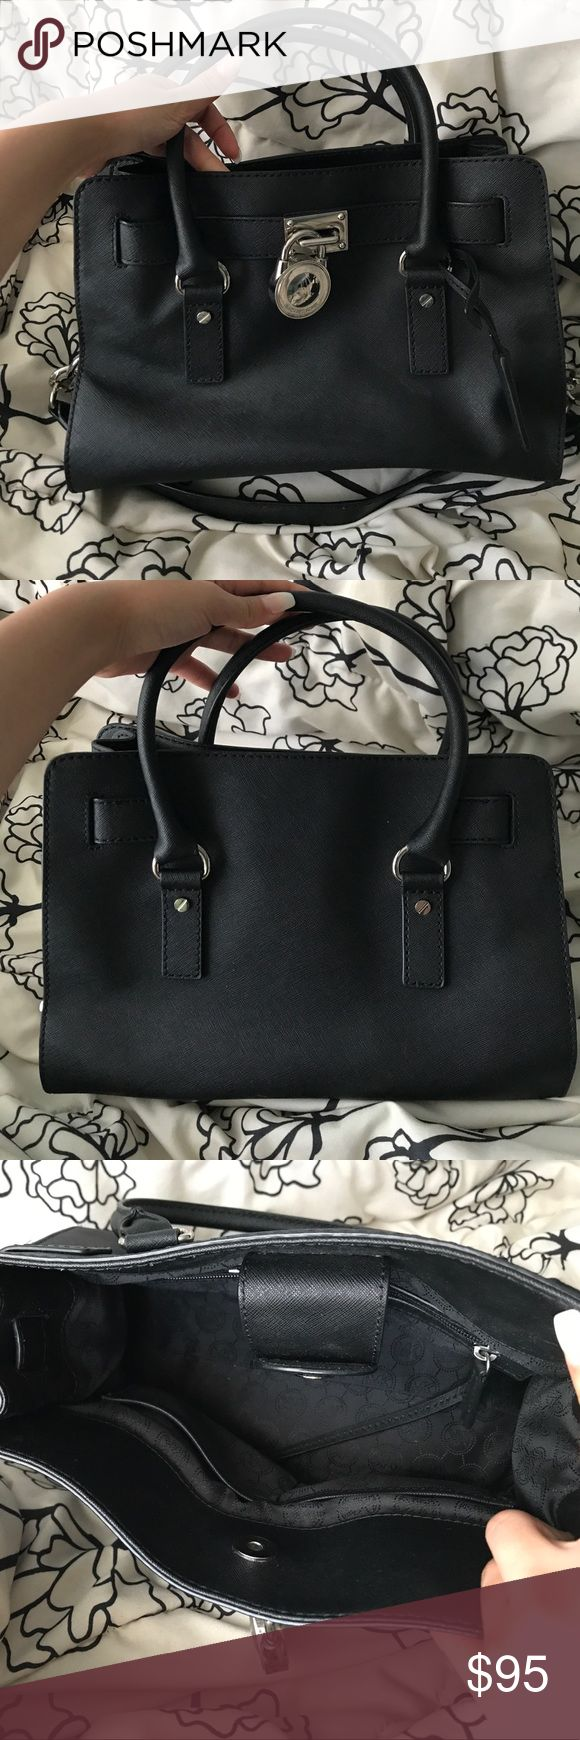 Black Michael Kors Tote/Shoulder Bag Used but still in good condition. It's a medium sized bag, not too big but not too small, you can definitely fit a lot of things in it. It has a strap with chains at the end of it that u can wear on your shoulders or arms. I've used it maybe less than 5 times, I loved the purse at first but I don't use it anymore Michael Kors Bags Shoulder Bags